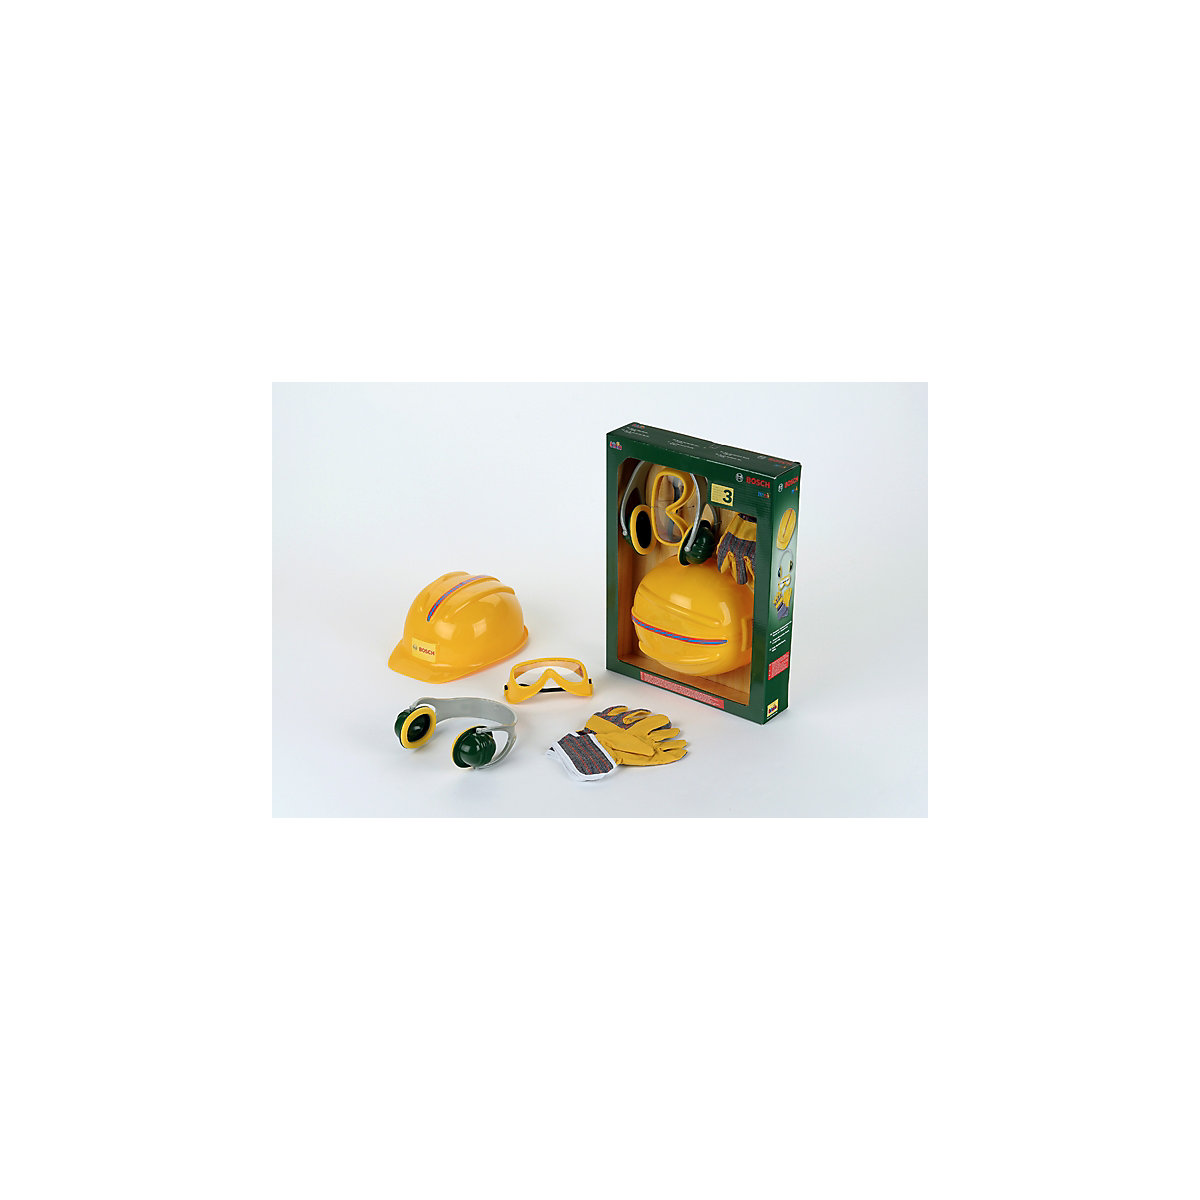 New ELC Boy Bosch Accessory Set Toy From 3 years - Early Learning Centre Gifts